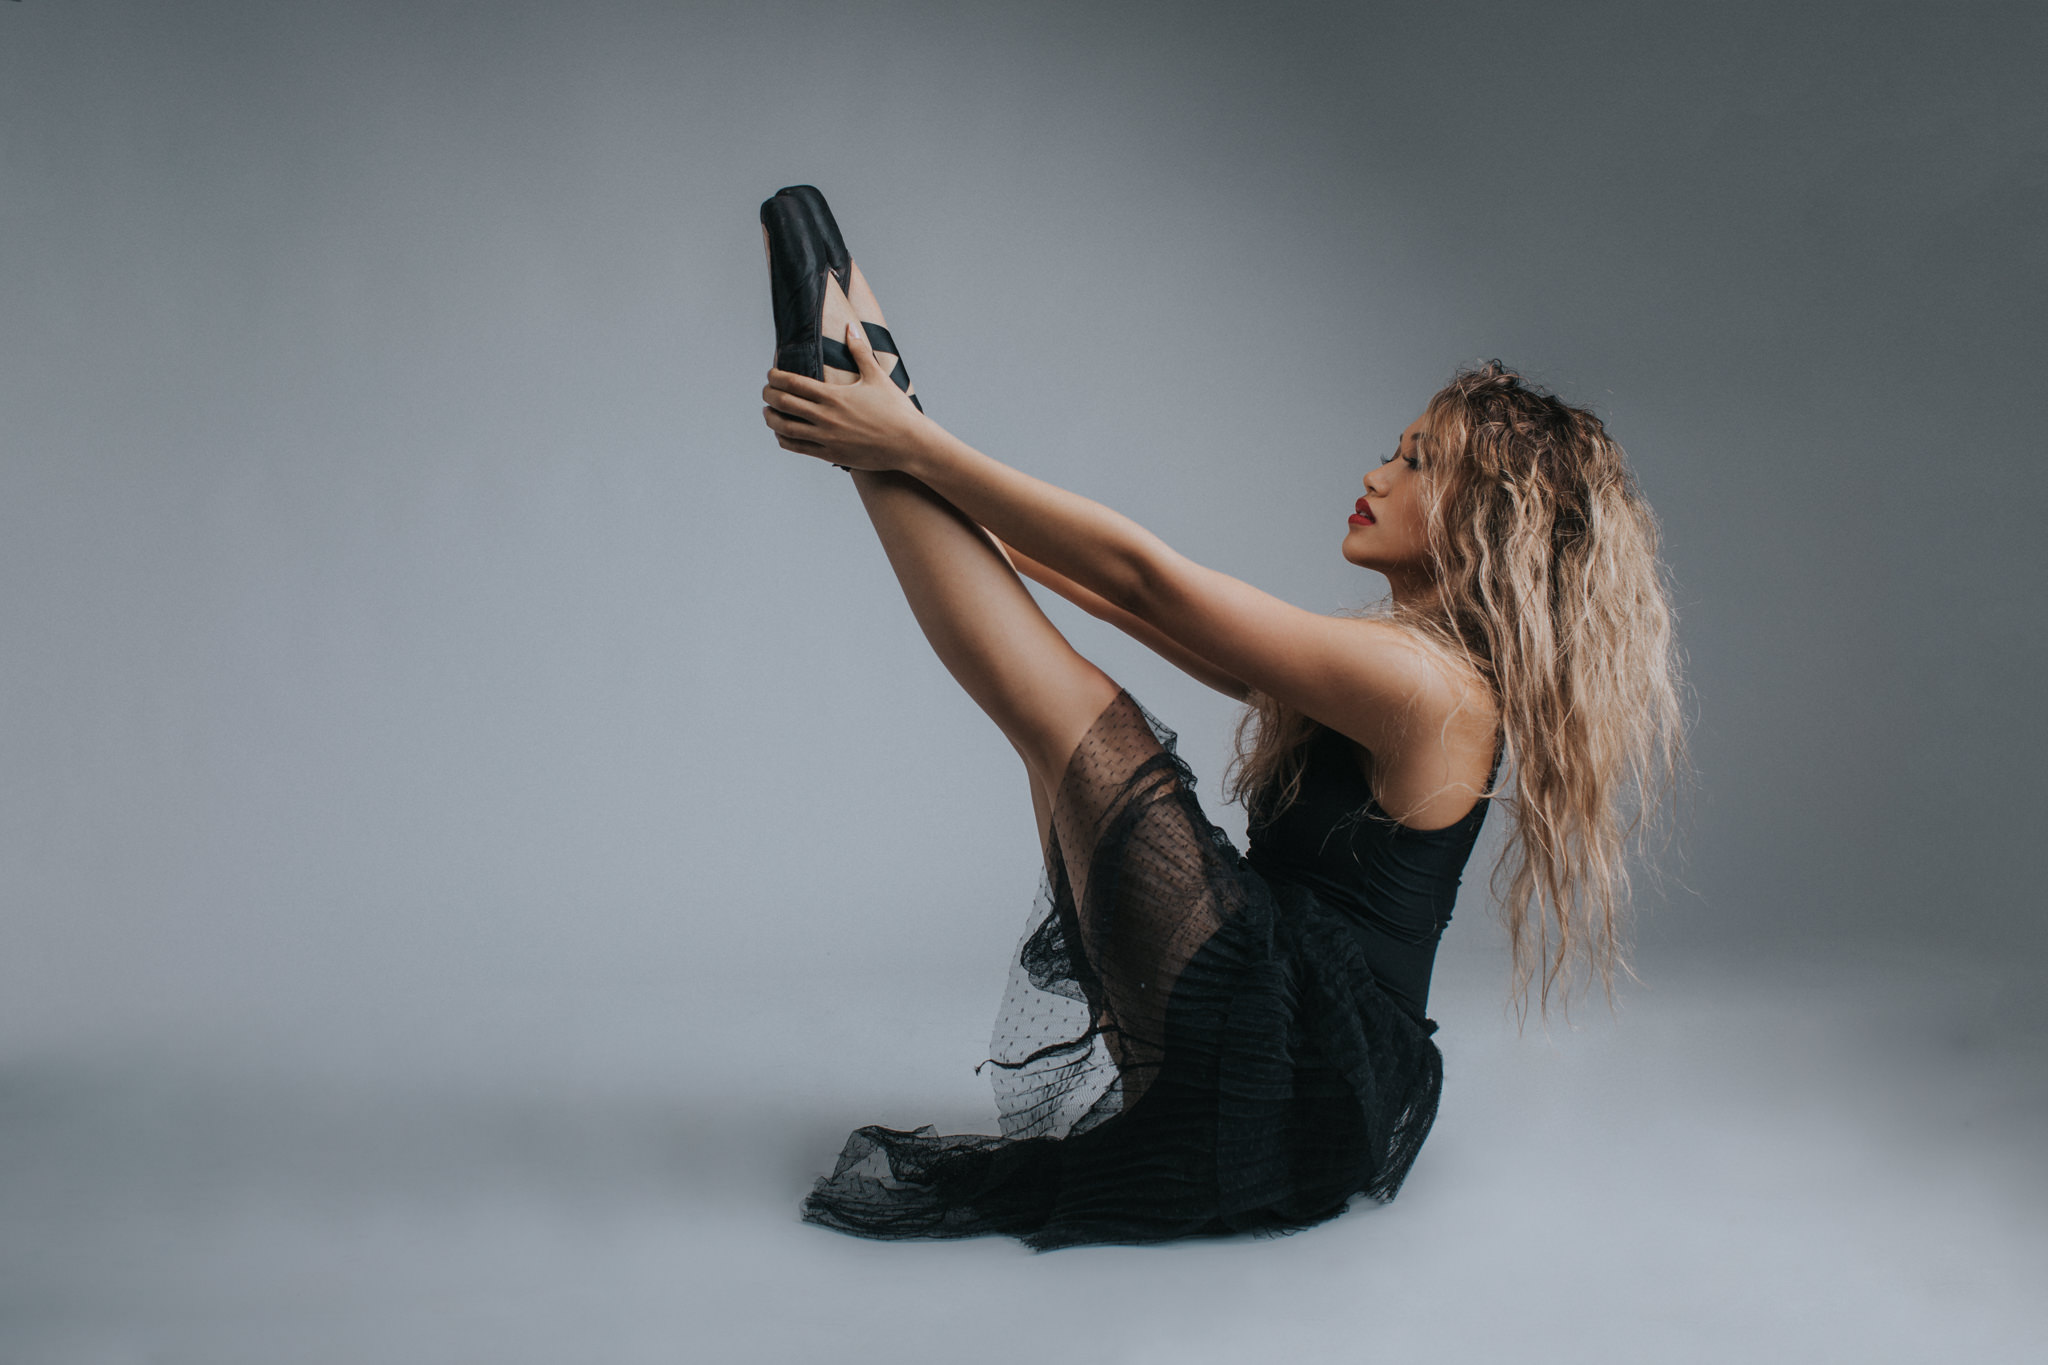 dance poses by female dancer